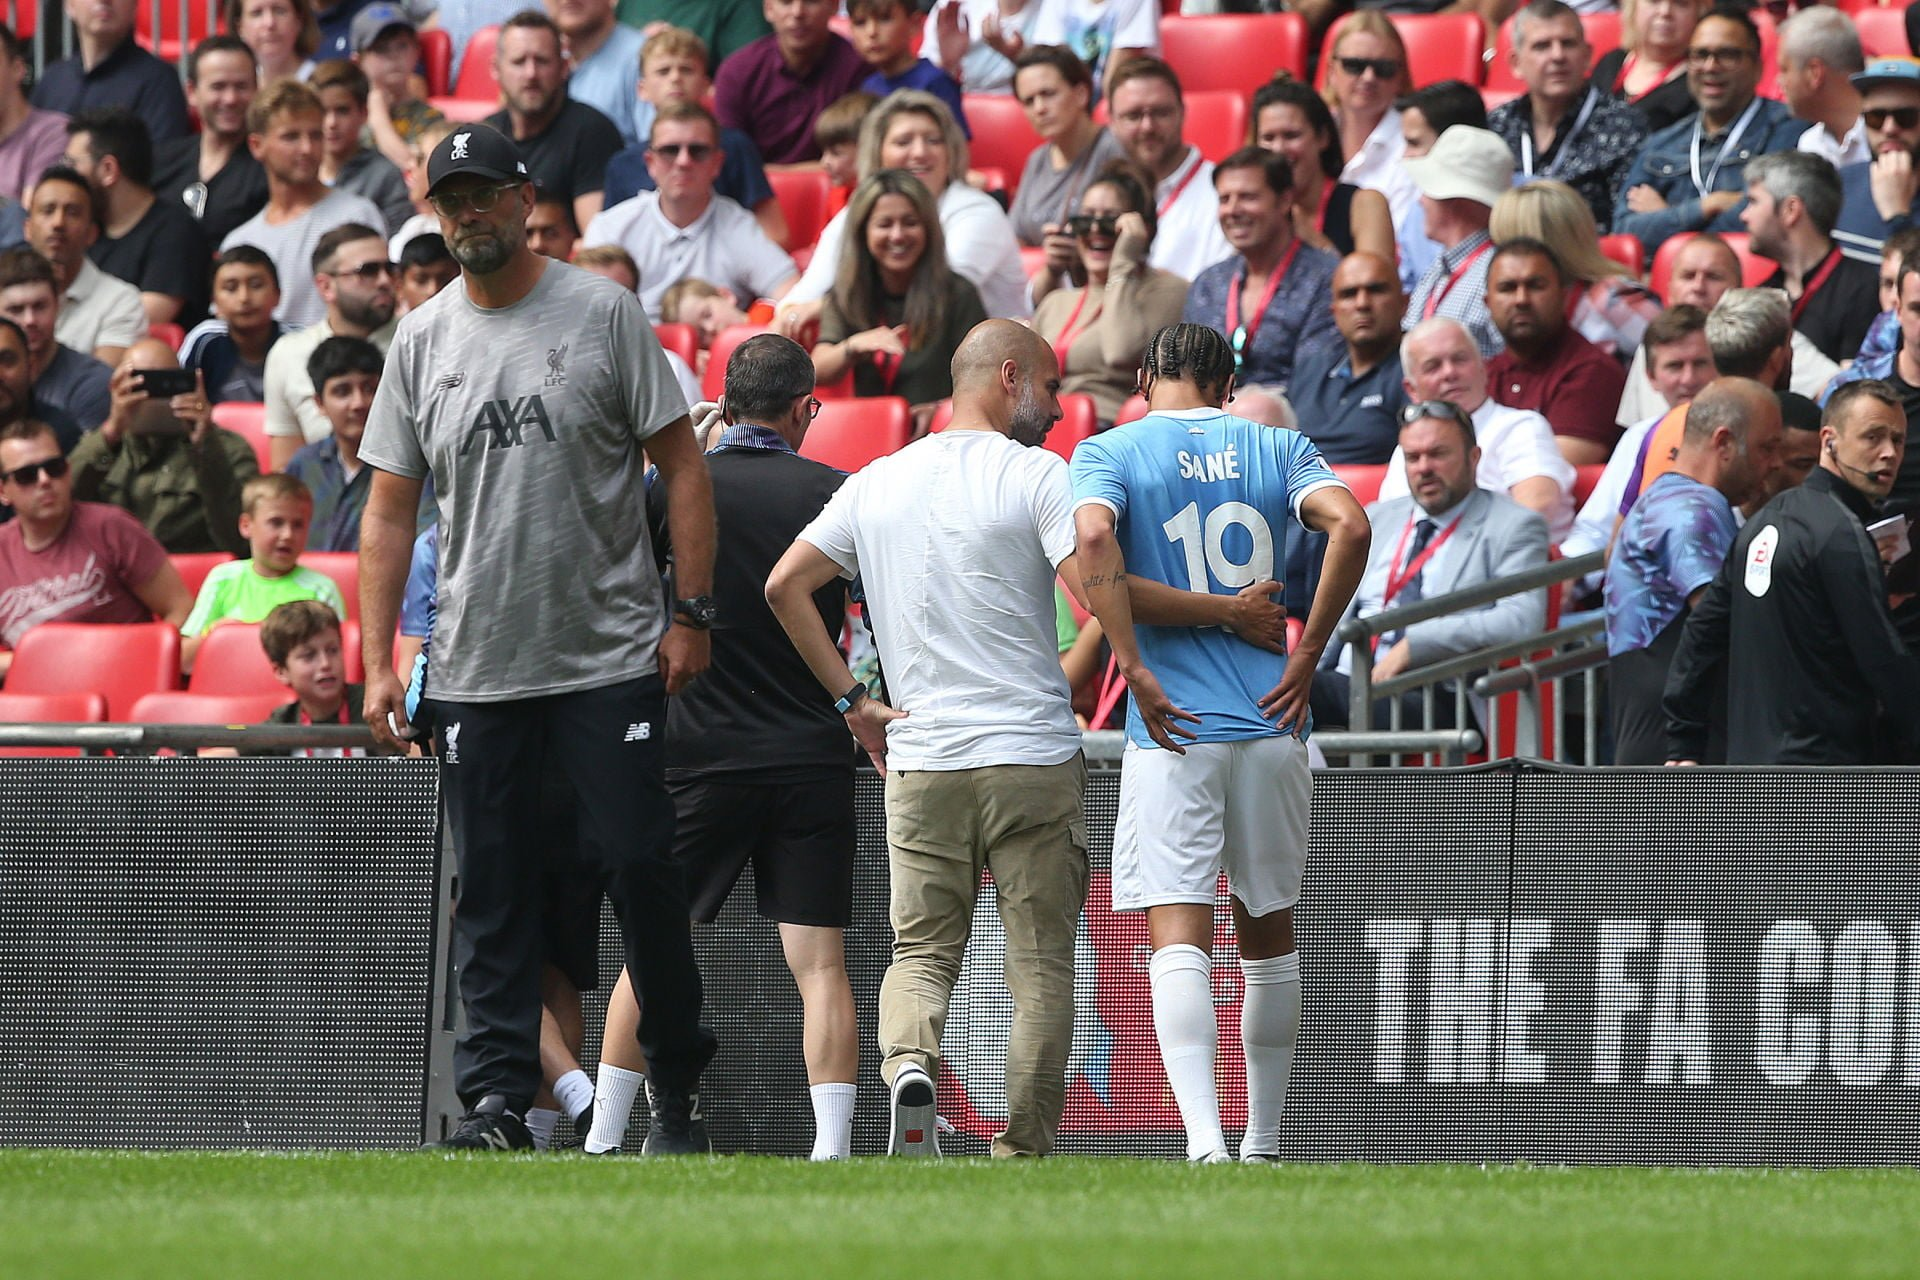 04.08.2019, Wembley Stadion, London, ENG, Community Shield, FC Liverpool vs Manchester City, im Bild Manchester City Manager Pep Guardiola consoles Leroy Sane of Manchester City as he leaves the match through injury early on // Manchester City Manager Pep Guardiola consoles Leroy Sane of Manchester City as he leaves the match through injury early on during the Community Shield Match between FC Liverpool and Manchester City at the Wembley Stadion in London, Great Britain on 2019/08/04. EXPA Pictures © 2019, PhotoCredit: EXPA/ Focus Images/ Paul Chesterton *****ATTENTION - for AUT, GER, FRA, ITA, SUI, POL, CRO, SLO only***** TARCZA WSPOLNOTY PILKA NOZNA FOT.EXPA/NEWSPIX.PL Austria, Italy, Spain, Slovenia, Serbia, Croatia, Germany, UK, USA and Sweden OUT! --- Newspix.pl *** Local Caption *** www.newspix.pl mail us: info@newspix.pl call us: 0048 022 23 22 222 --- Polish Picture Agency by Ringier Axel Springer Poland